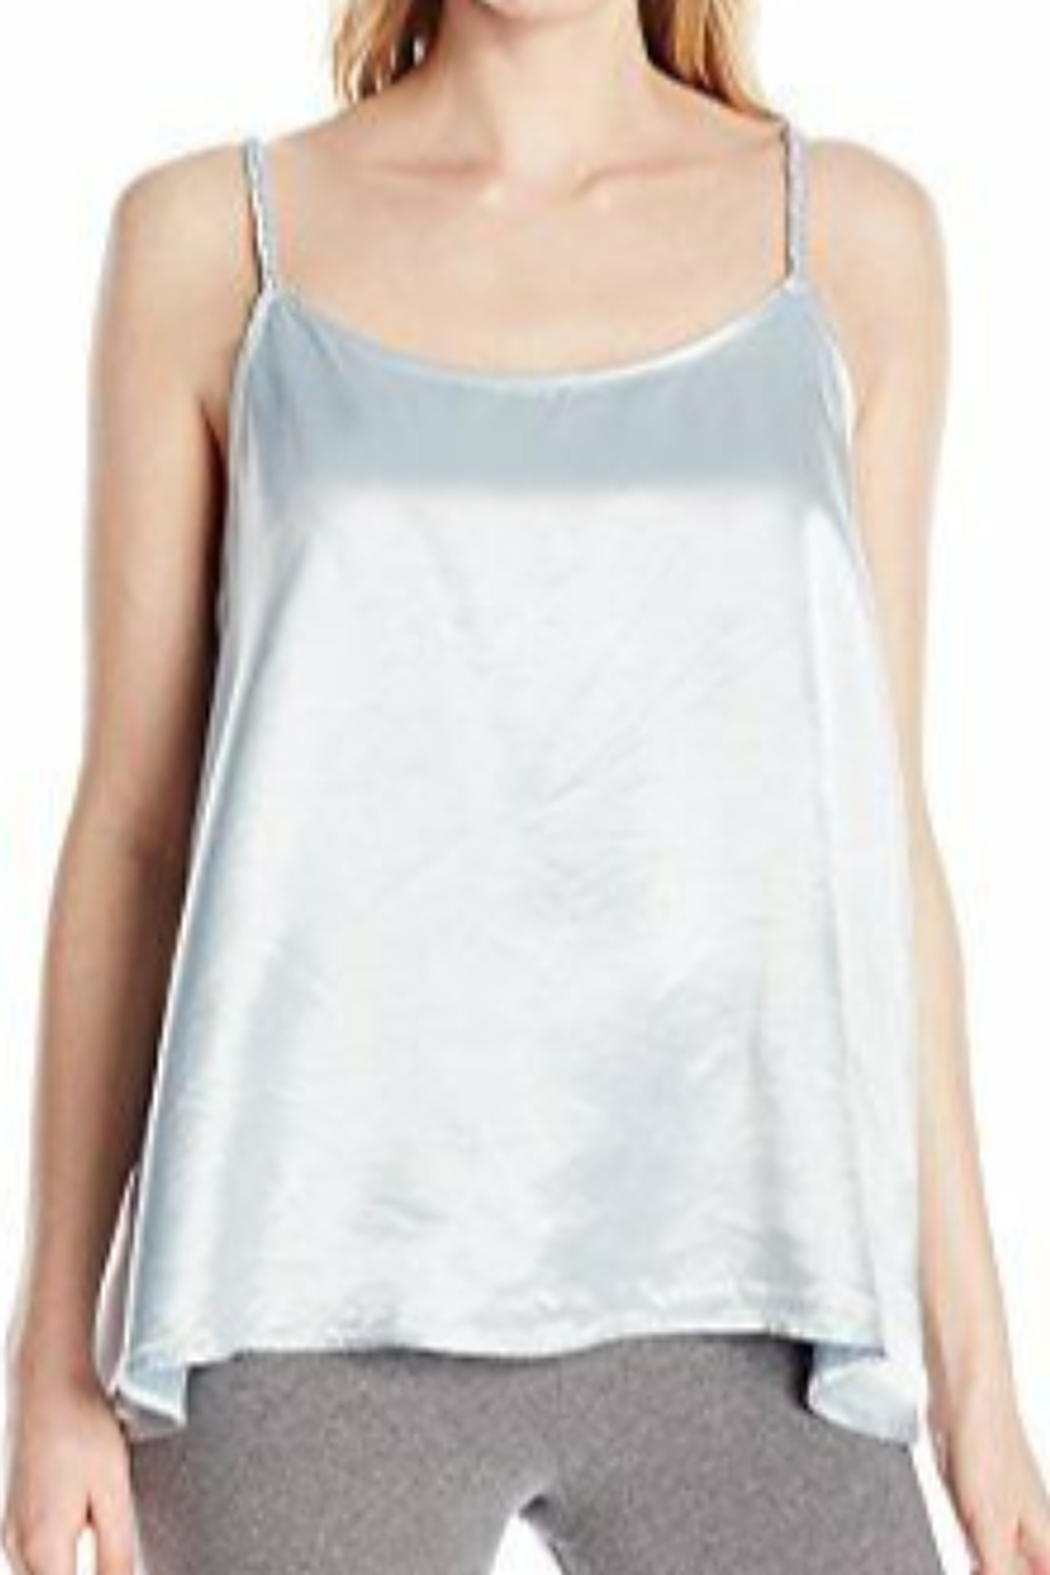 The Birds Nest DAISY CAMI W/ BRAIDED STRAPS - Front Cropped Image